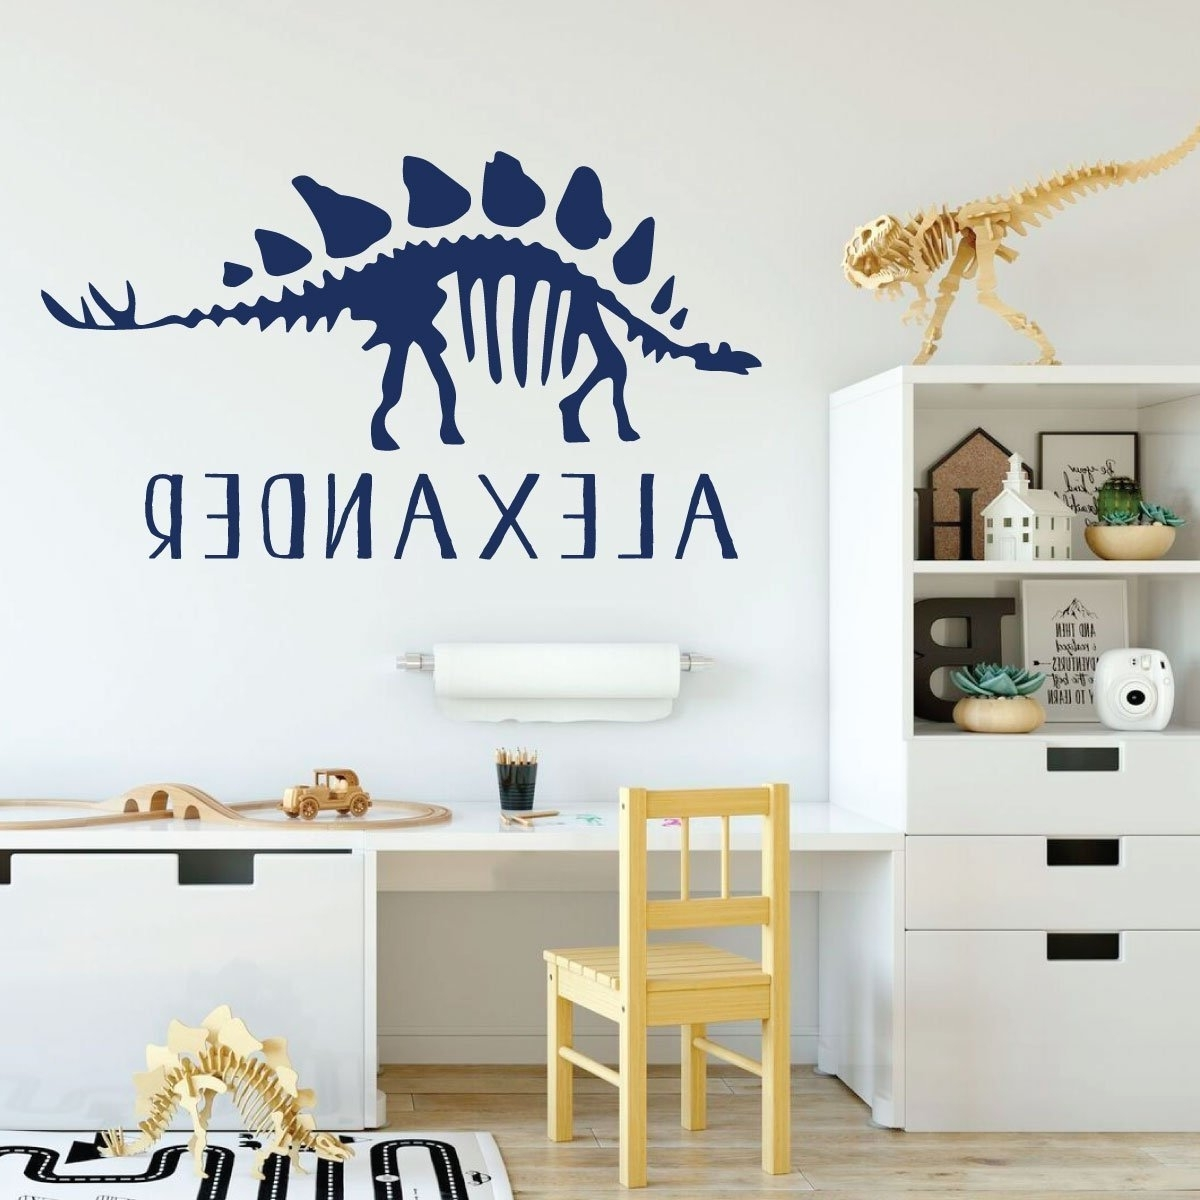 Newest Stegosaurus Skeleton Dinosaur Vinyl Wall Decal For Boys Room With Regard To Preschool Classroom Wall Decals (View 11 of 15)